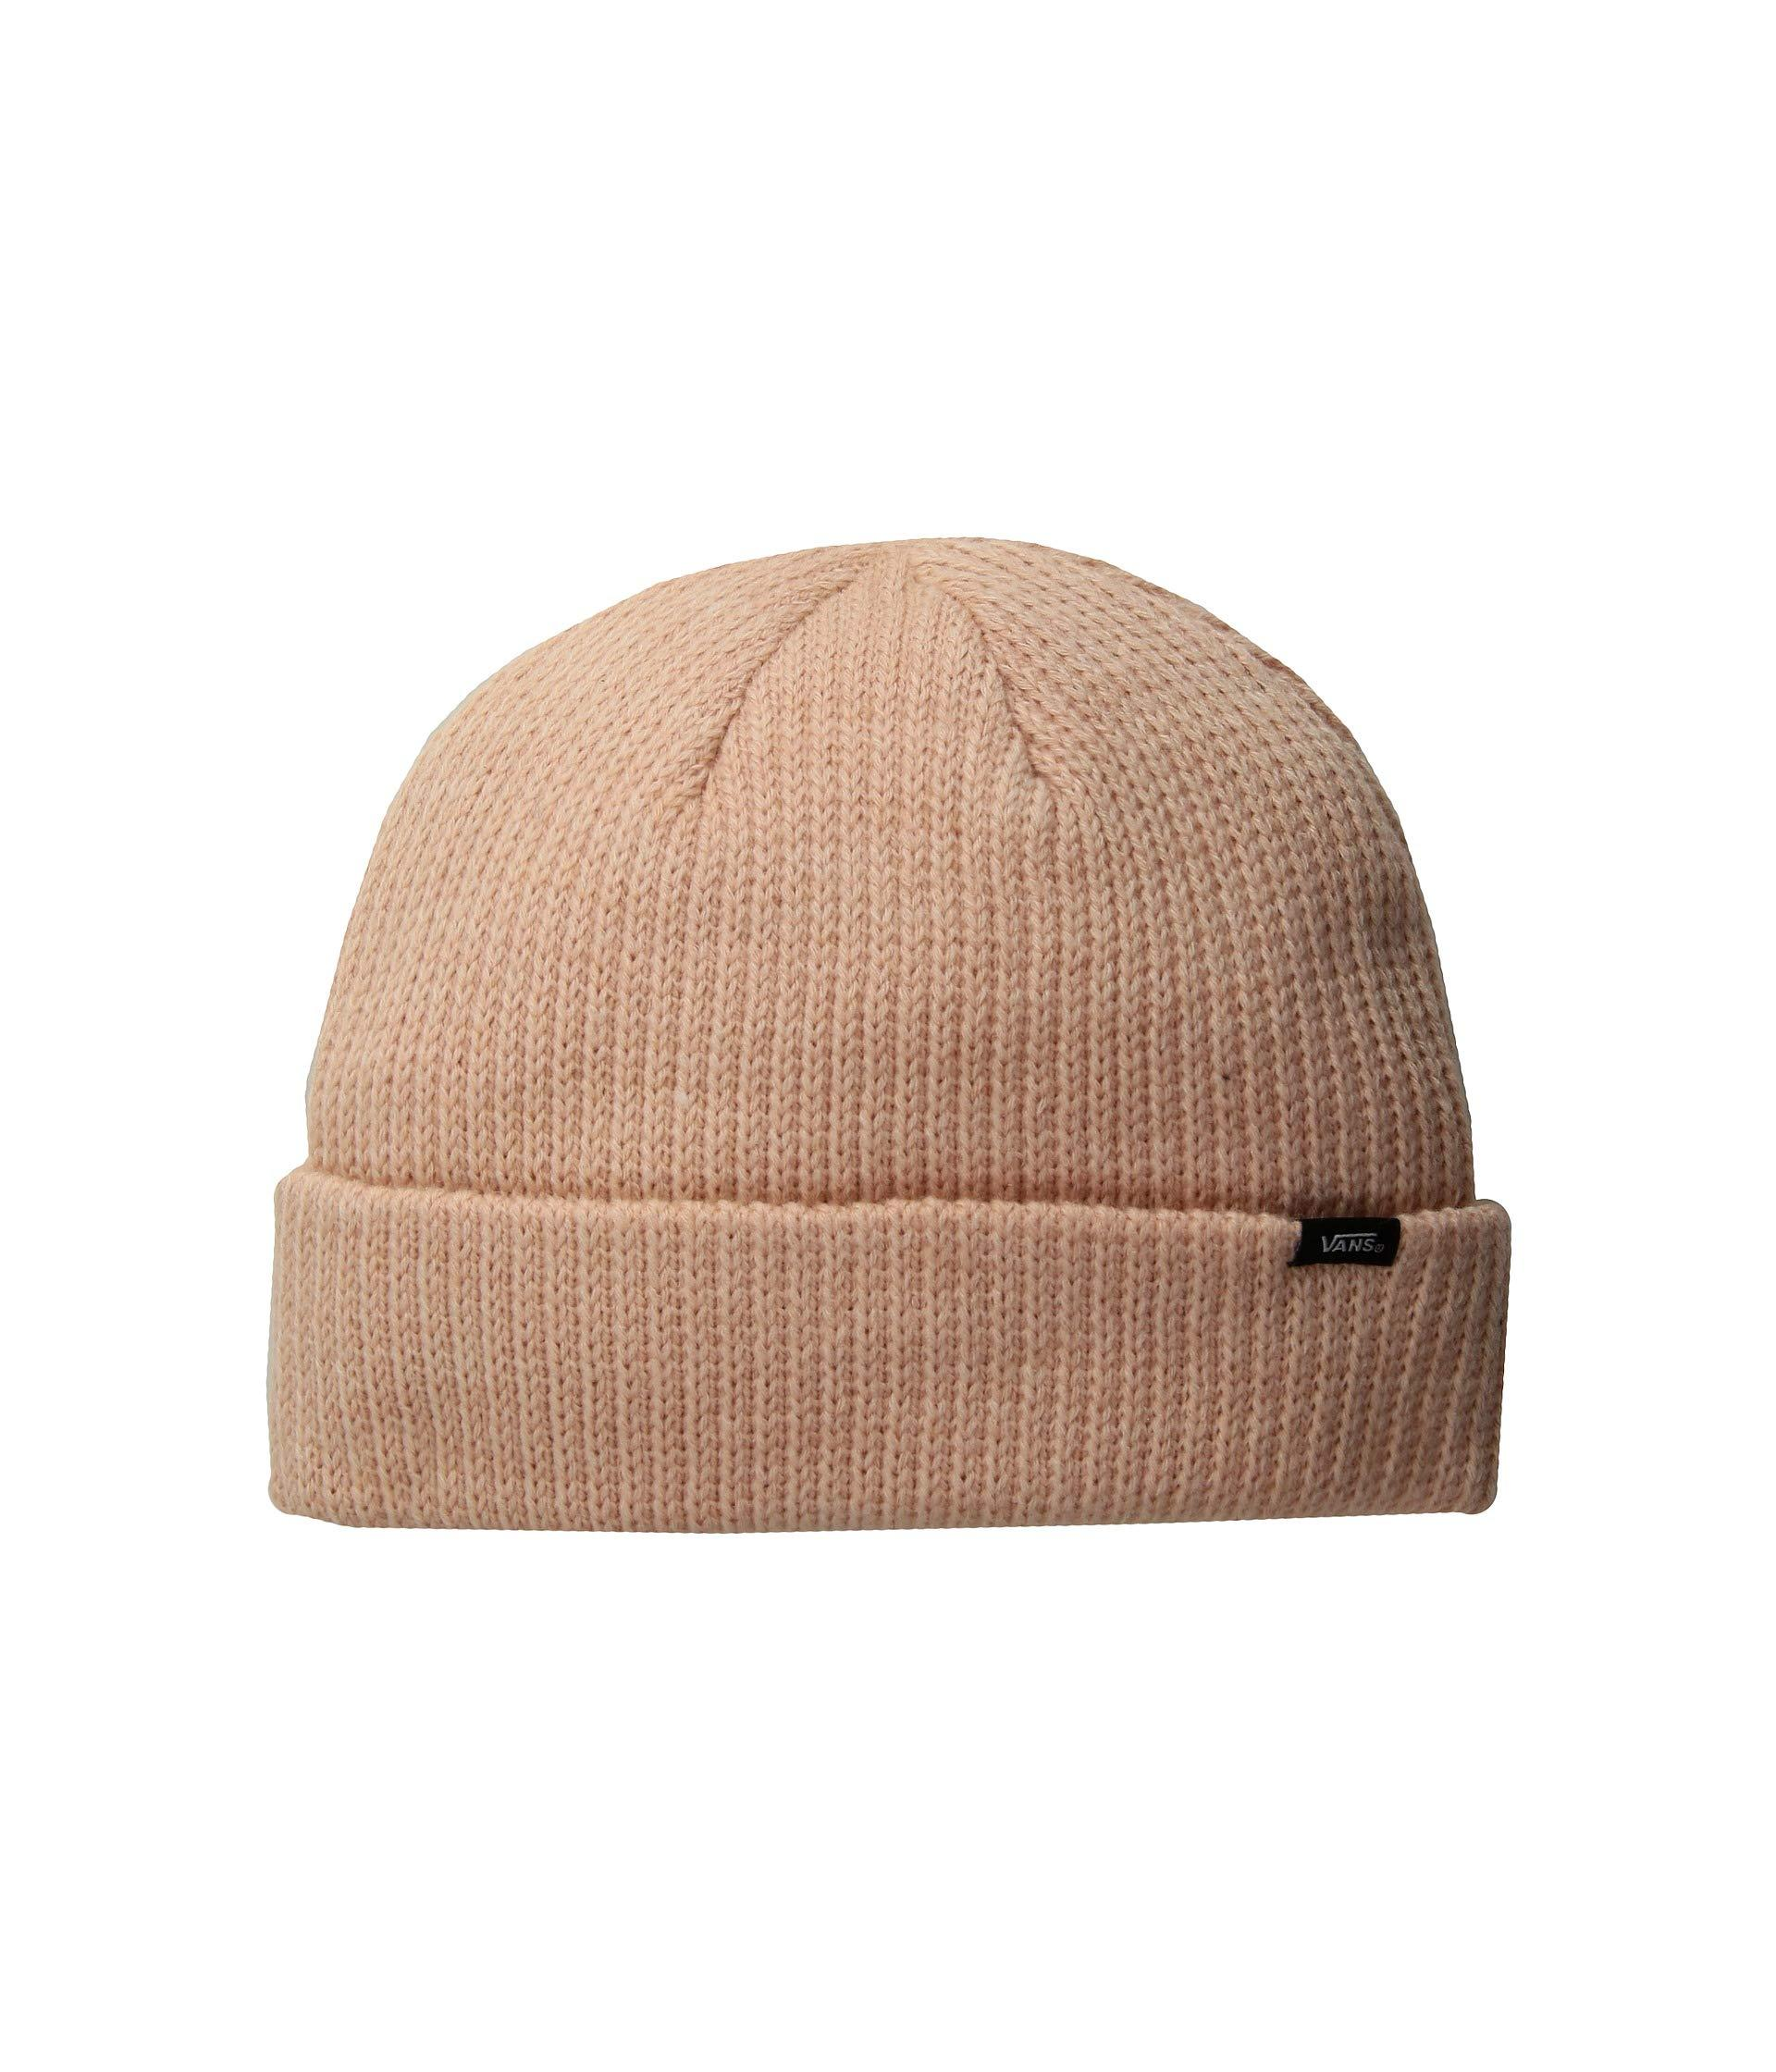 25ed6e12 Vans Core Basic Beanie in Natural - Lyst